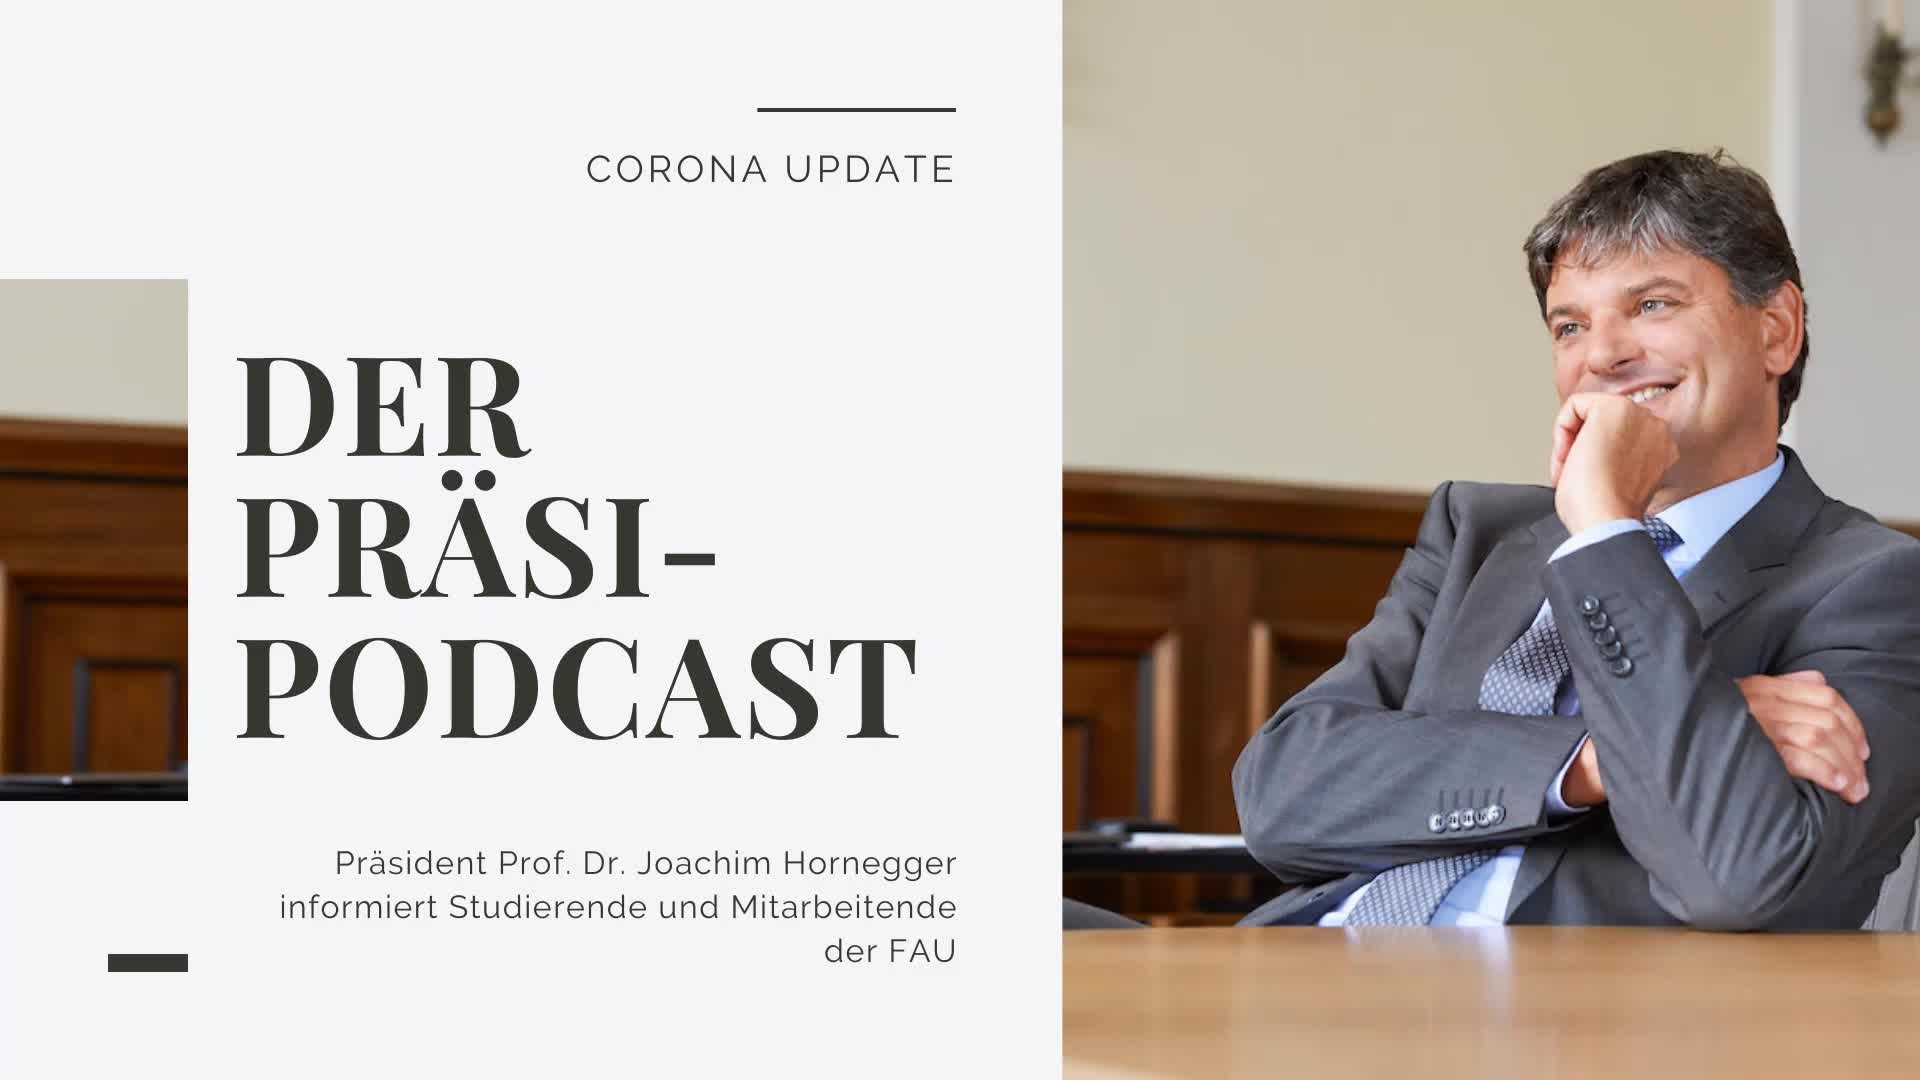 """Der Präsi-Podcast"" vom 24. September 2020 preview image"